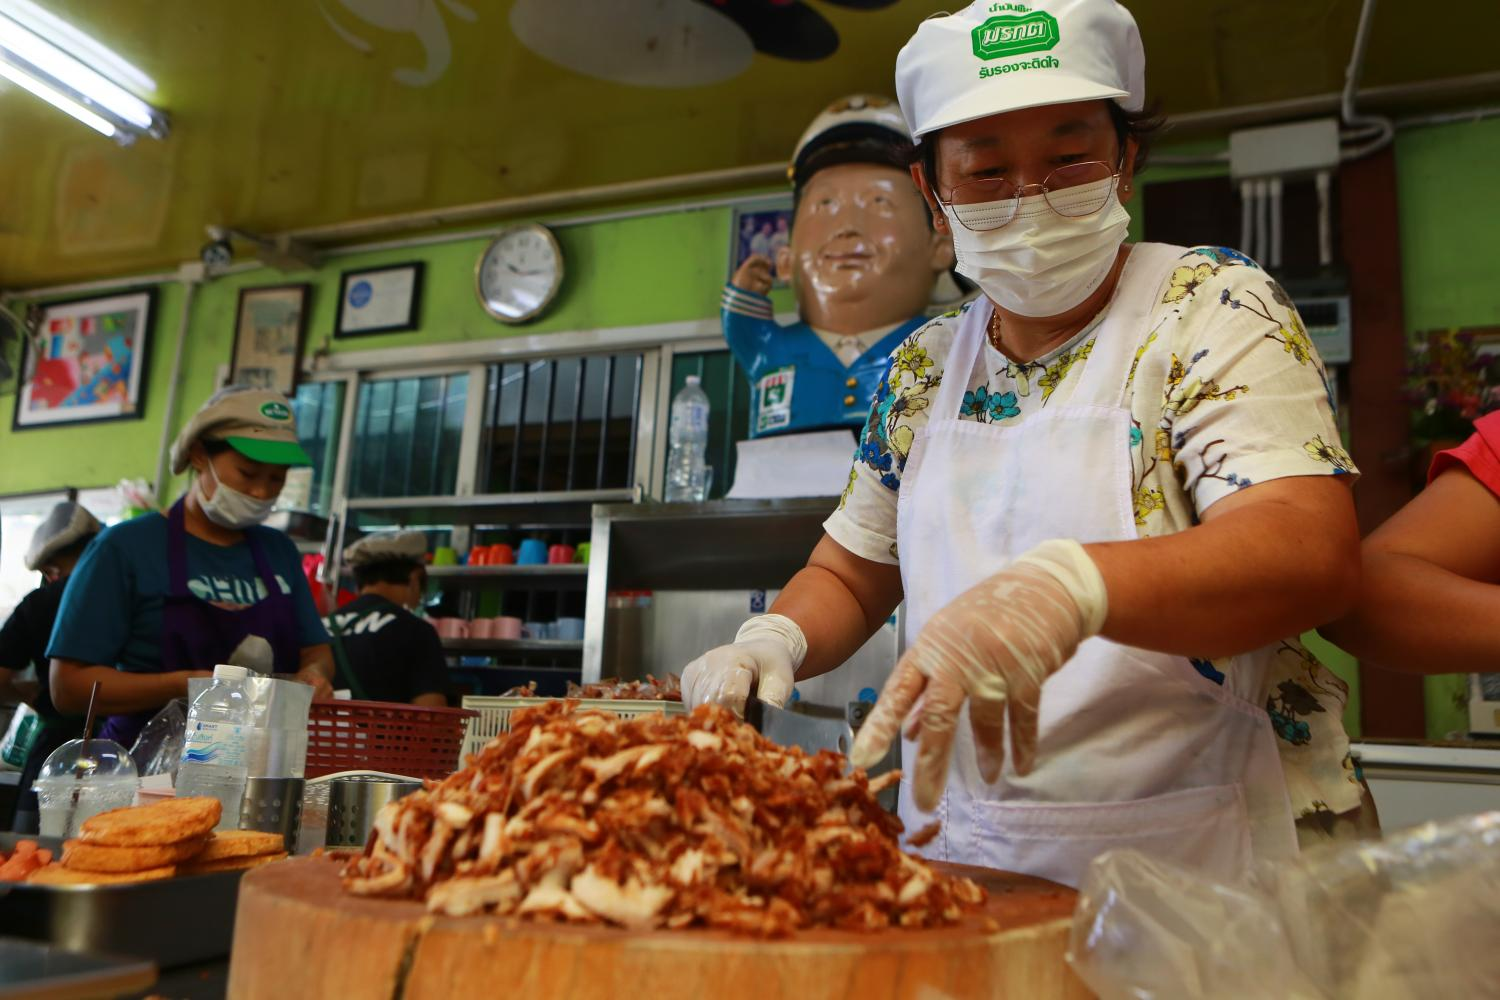 Jeh Jong, the owner of a well-known fried pork shop in Klong Toey, prepares meals for doctors and medical personnel to ensure their stomachs are full as they work hard to combat the Covid-19 virus. (Photo by Somchai Poomlard)